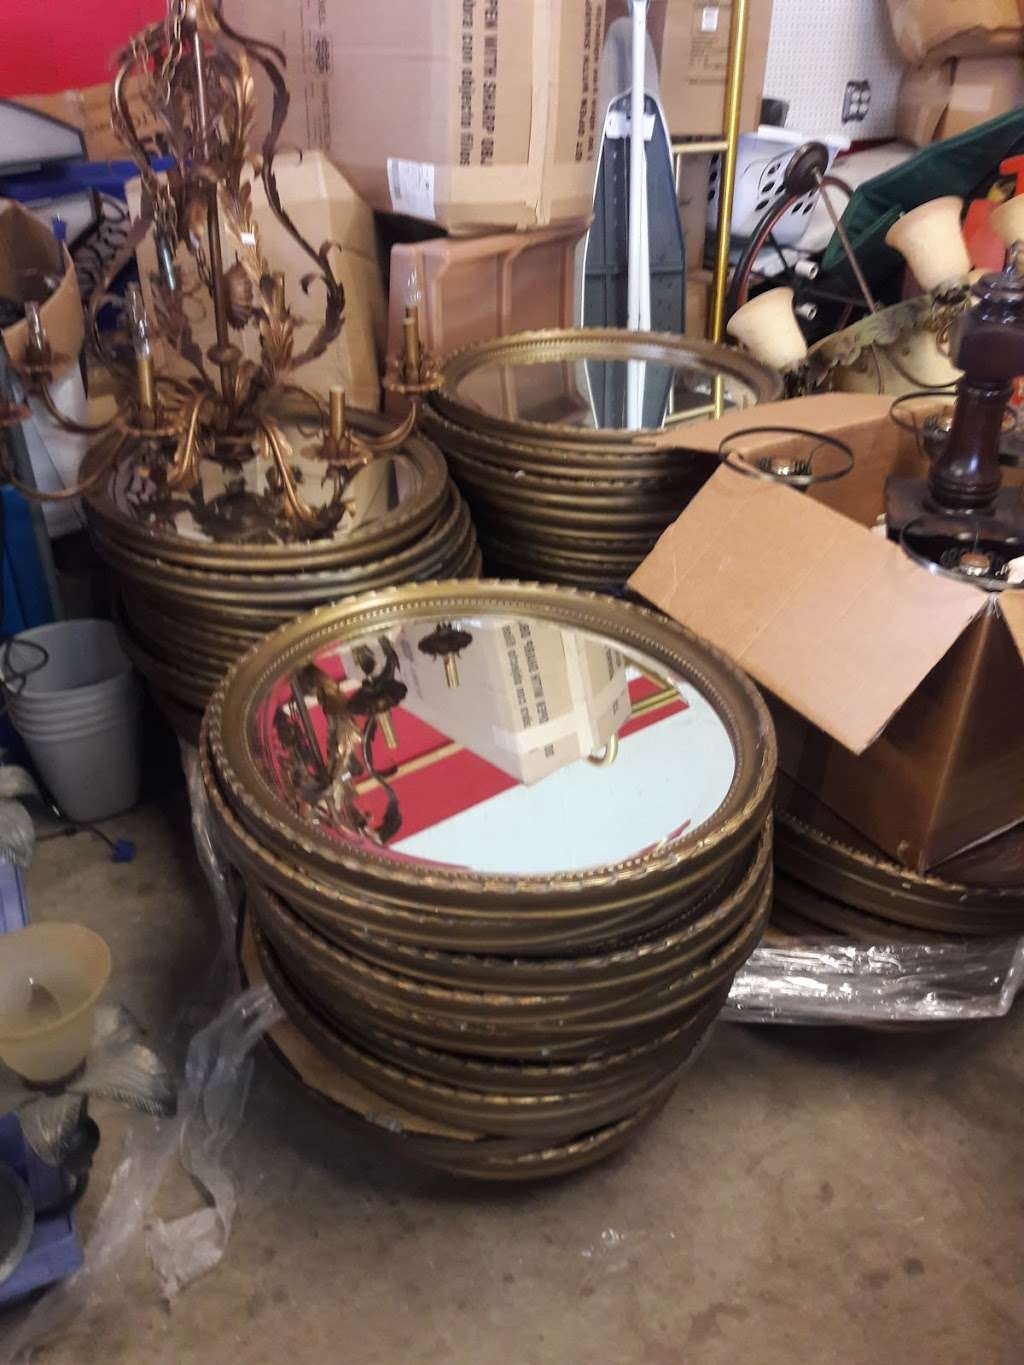 Forever Vintage And Surplus - furniture store  | Photo 3 of 7 | Address: 4200 Dundee Rd, Winter Haven, FL 33884, USA | Phone: (863) 651-6789